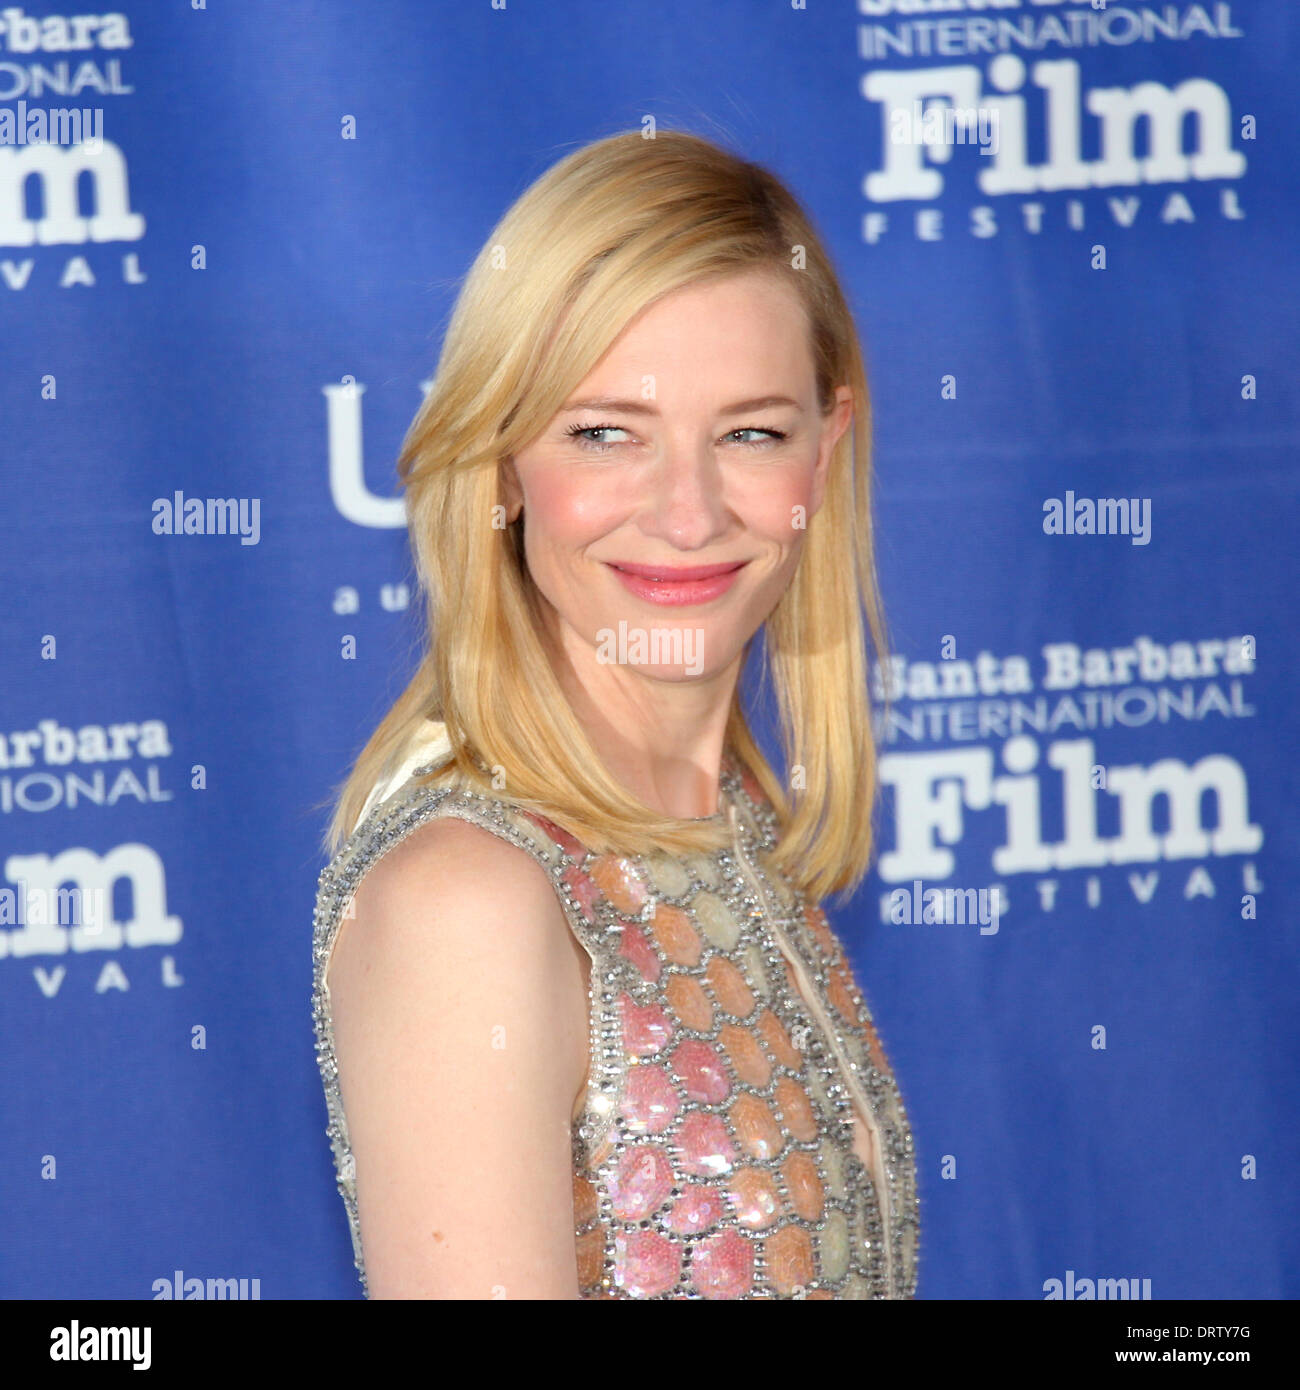 1st Feb, 2014  The Santa Barbara International Film Festival presents actress Cate Blanchett with the Outstanding - Stock Image